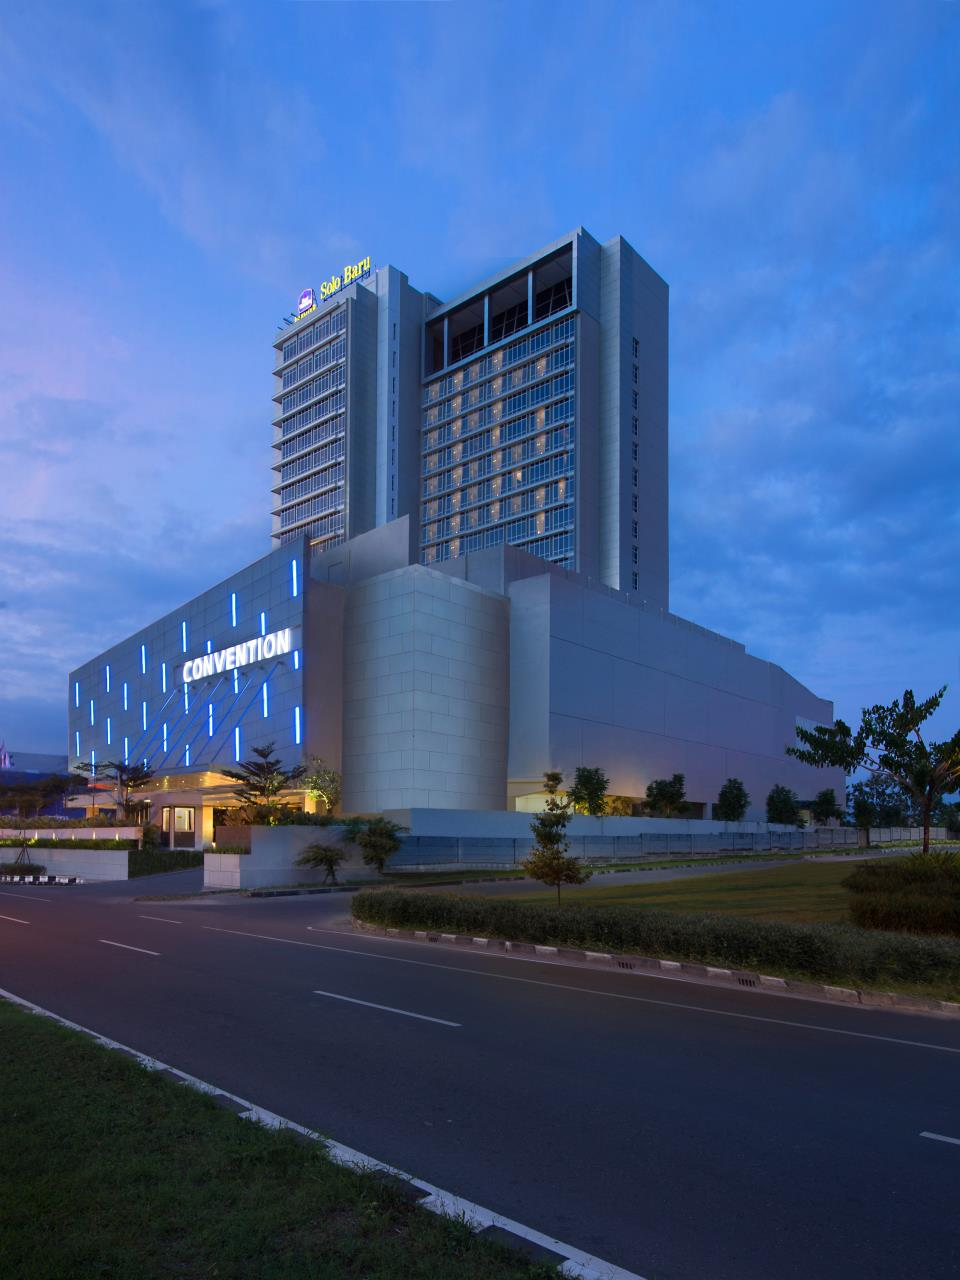 Best western unveils new hotel in solo central java indonesia